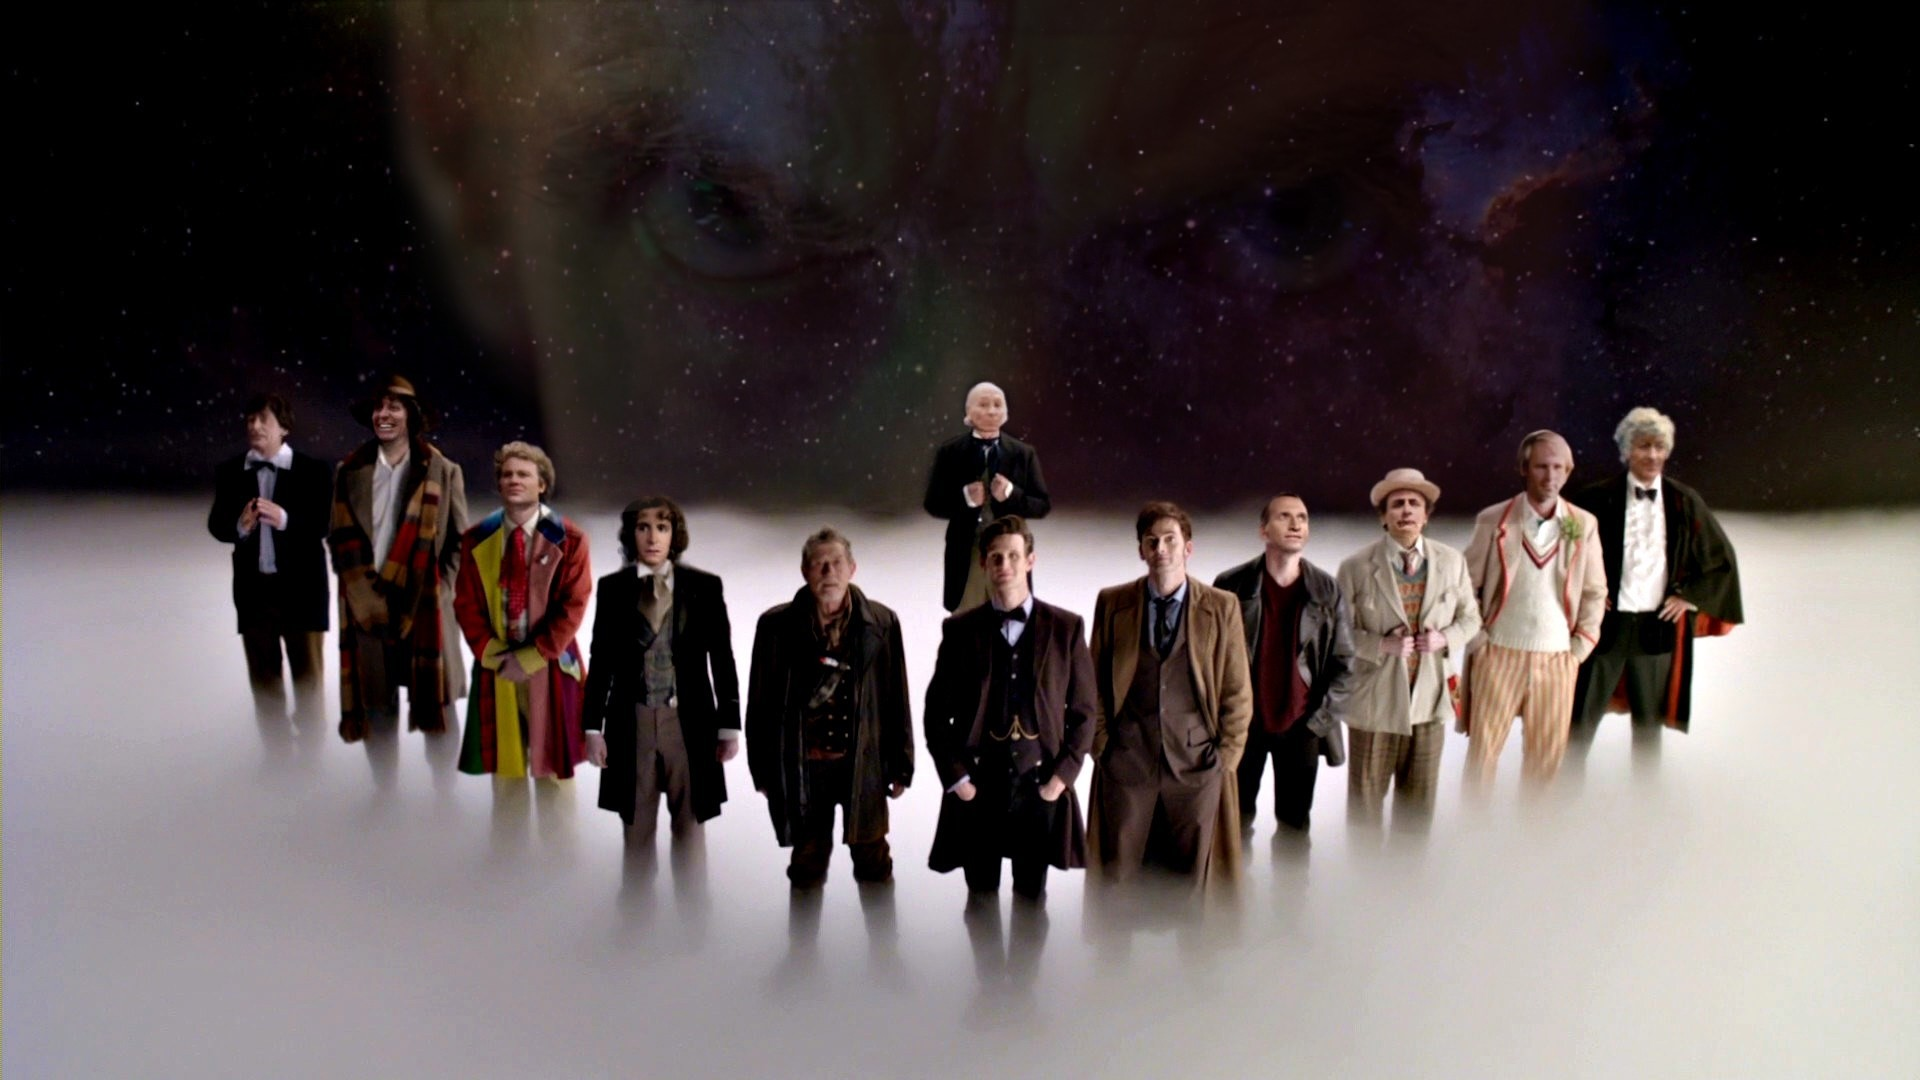 doctor who picture free hd widescreen, 214 kB – Harlow Jacobson